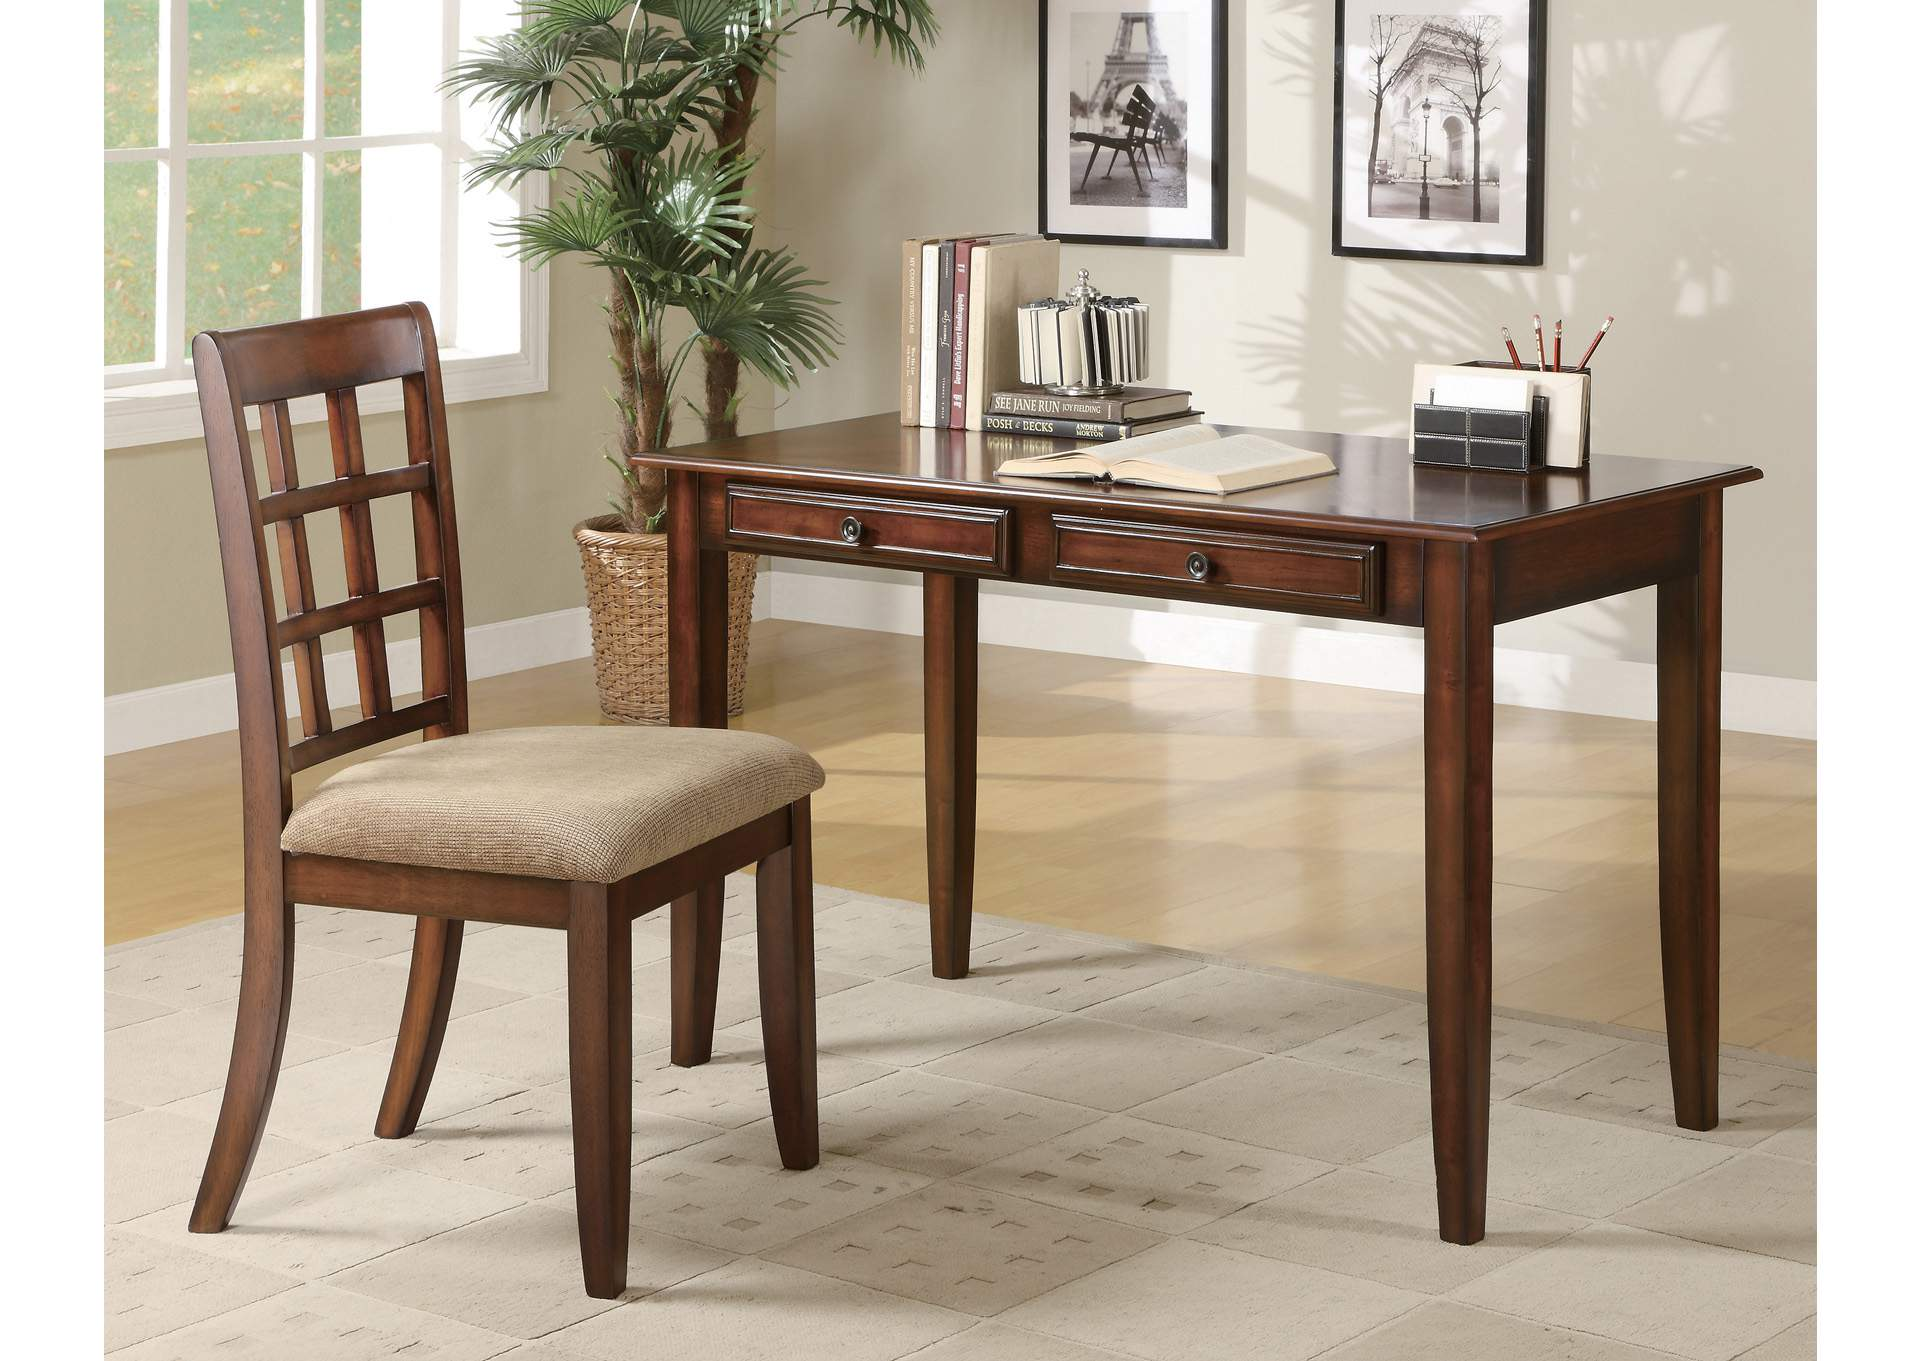 Chestnut Desk Set,Coaster Furniture